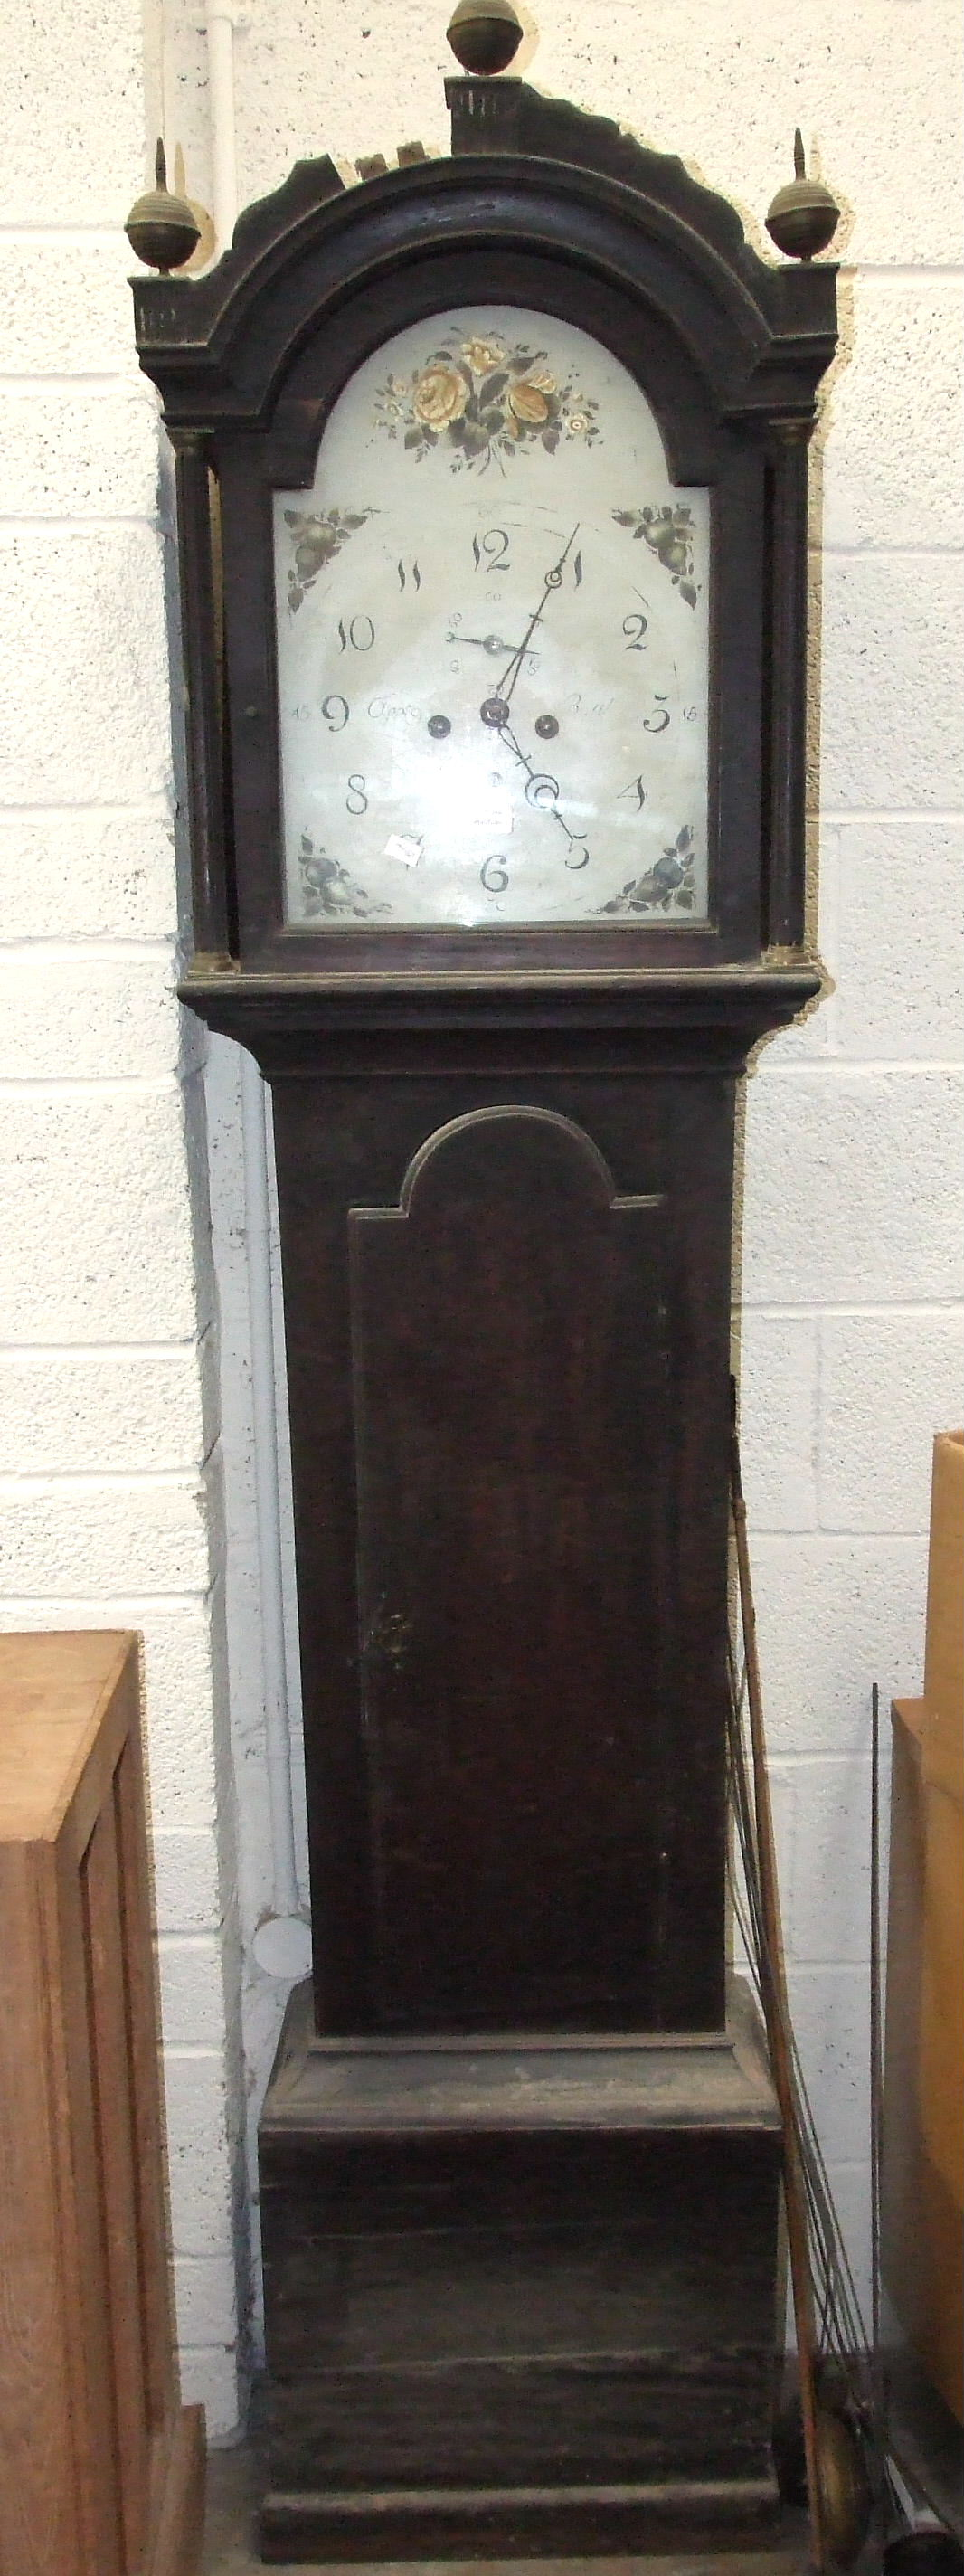 A 19th century mahogany long case clock with painted arched dial and bell-striking twin-train - Image 2 of 3